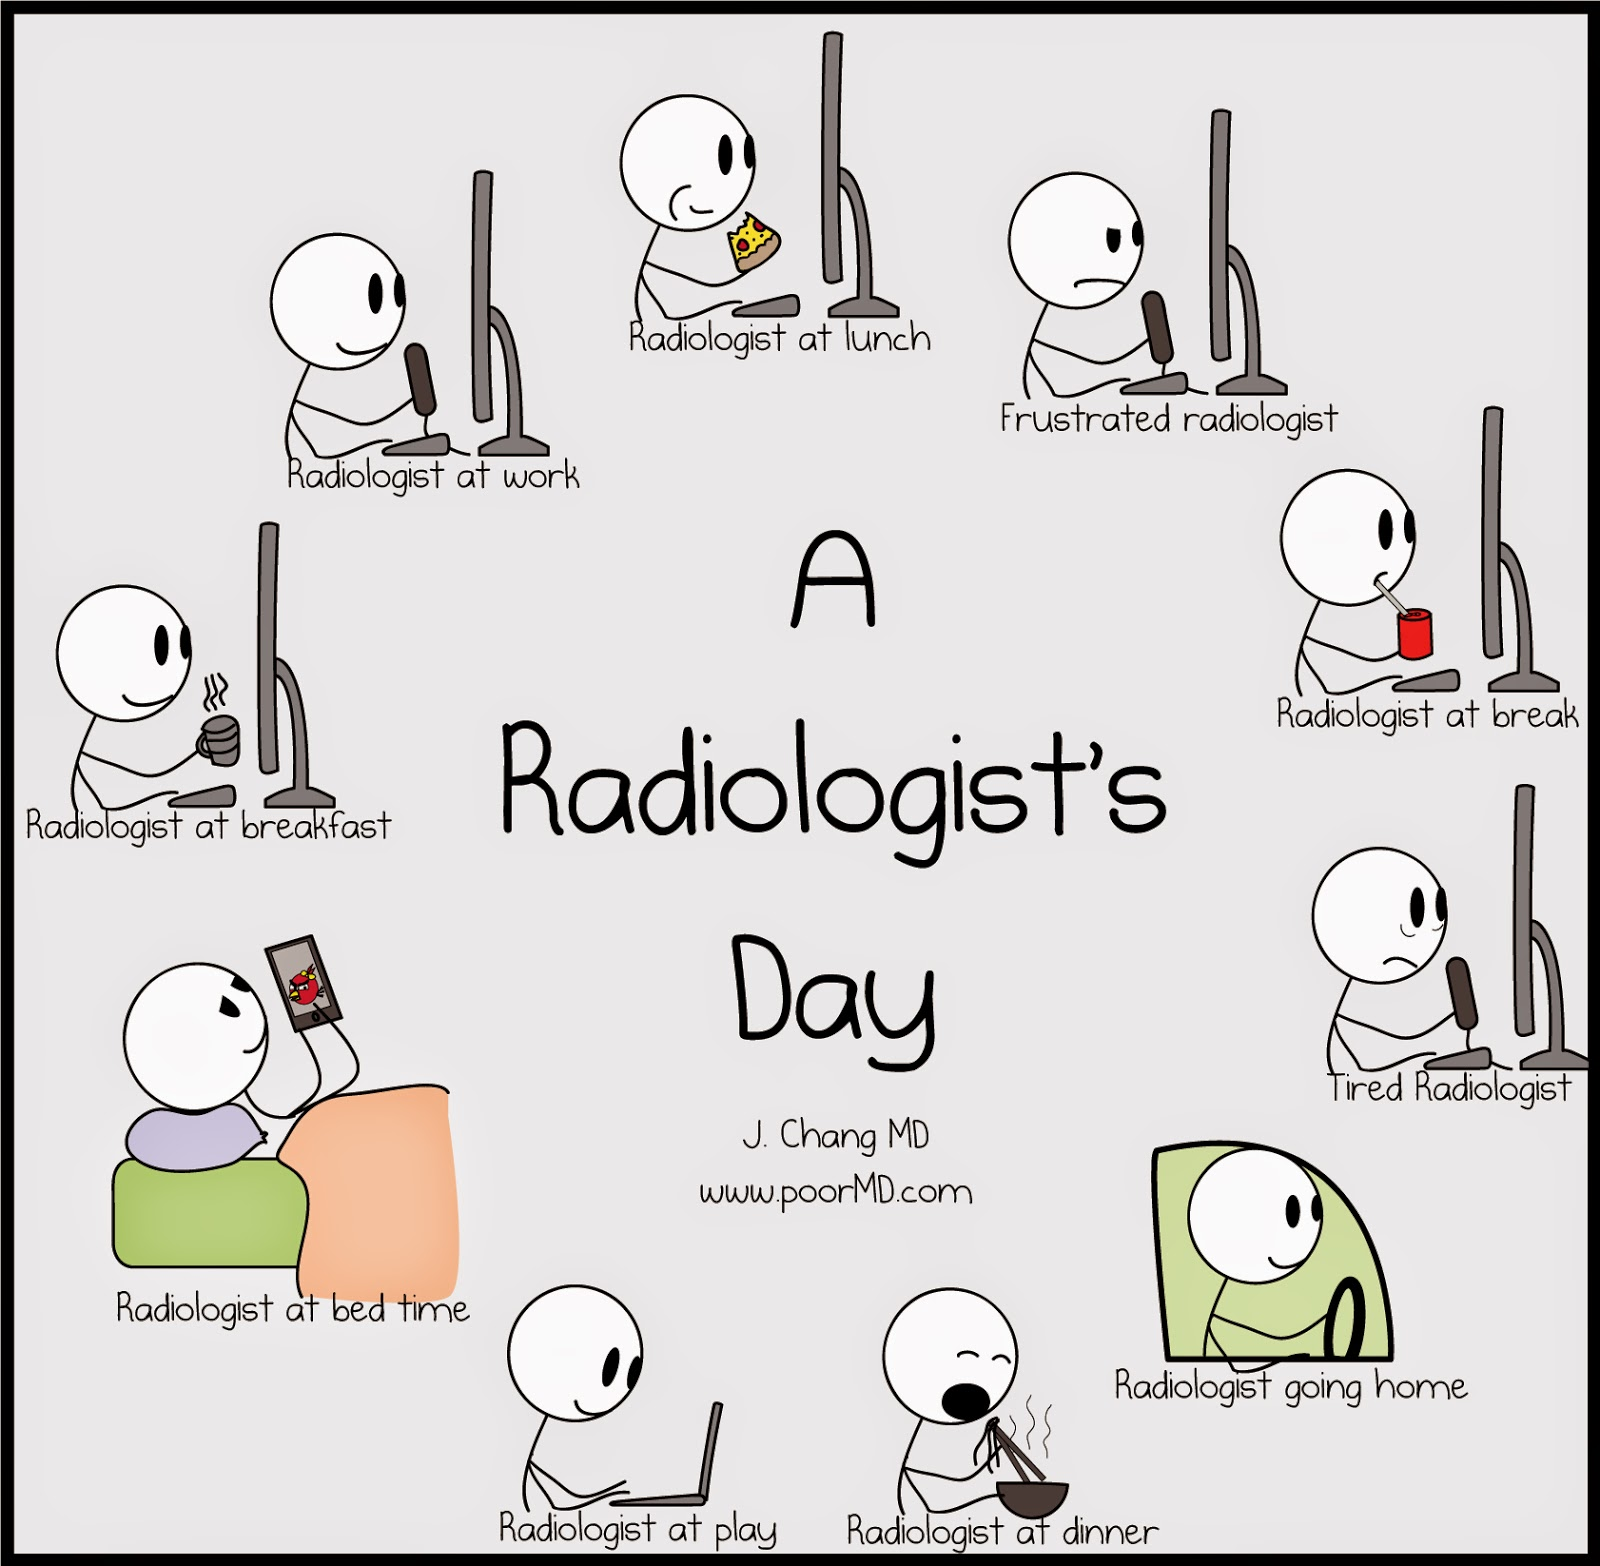 A Radiologist's Day